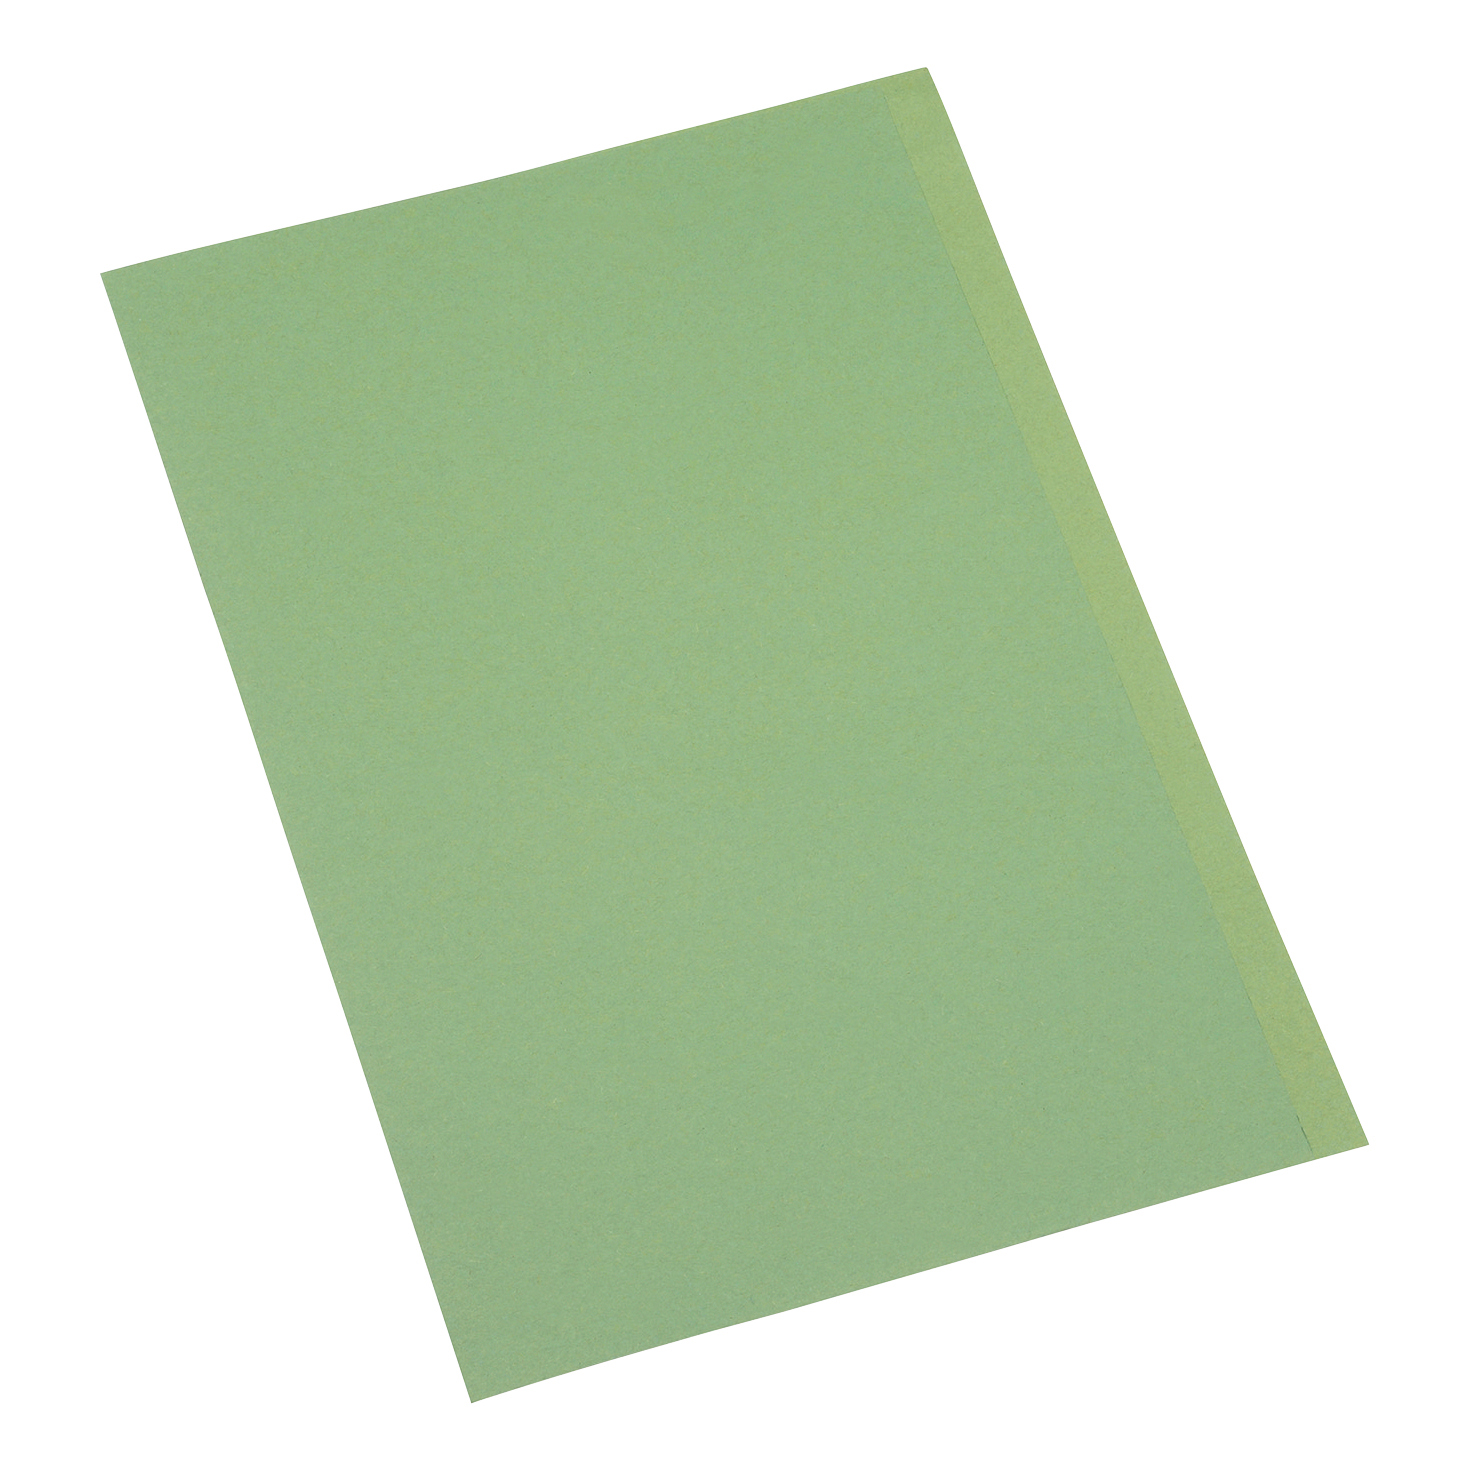 Square Cut Folders 5 Star Office Square Cut Folder Recycled 180gsm Foolscap Green Pack 100